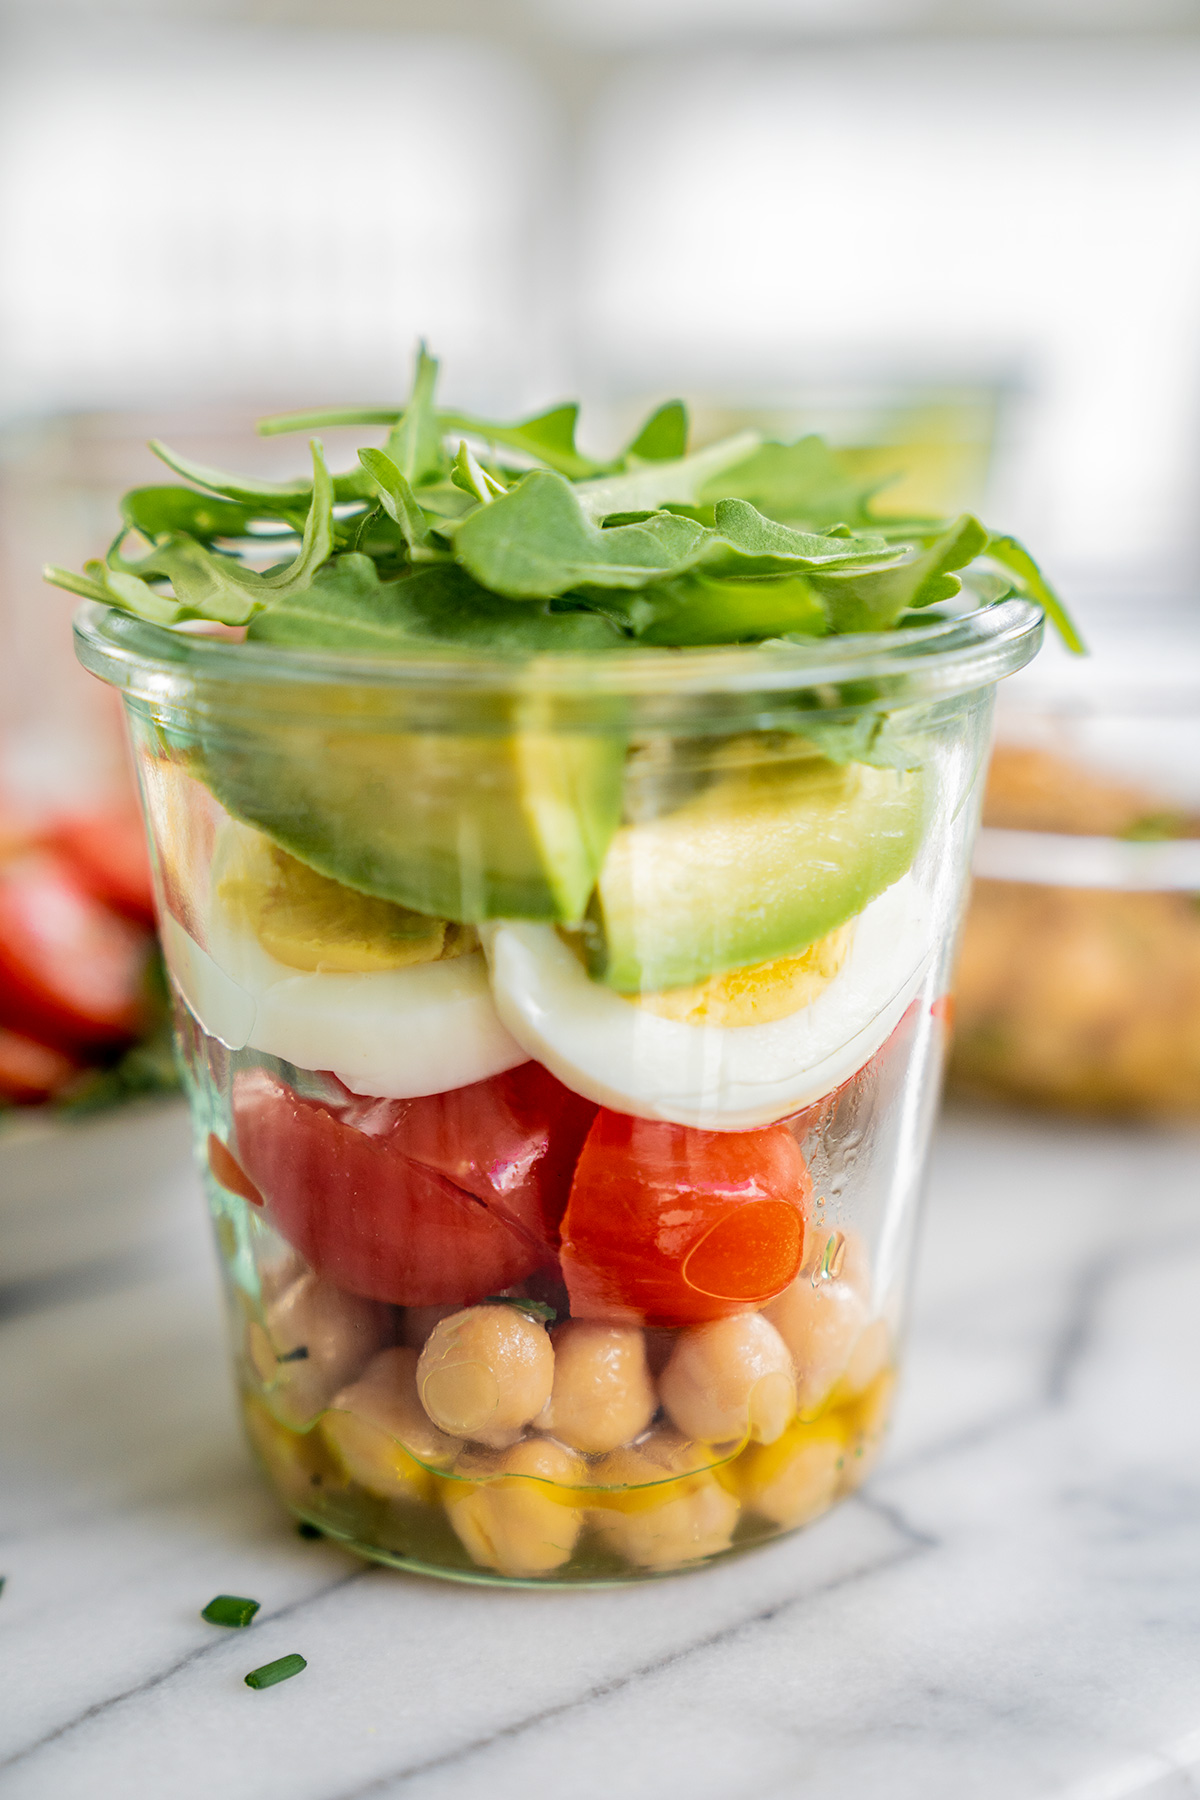 Marinated-Chickpeas-Salad